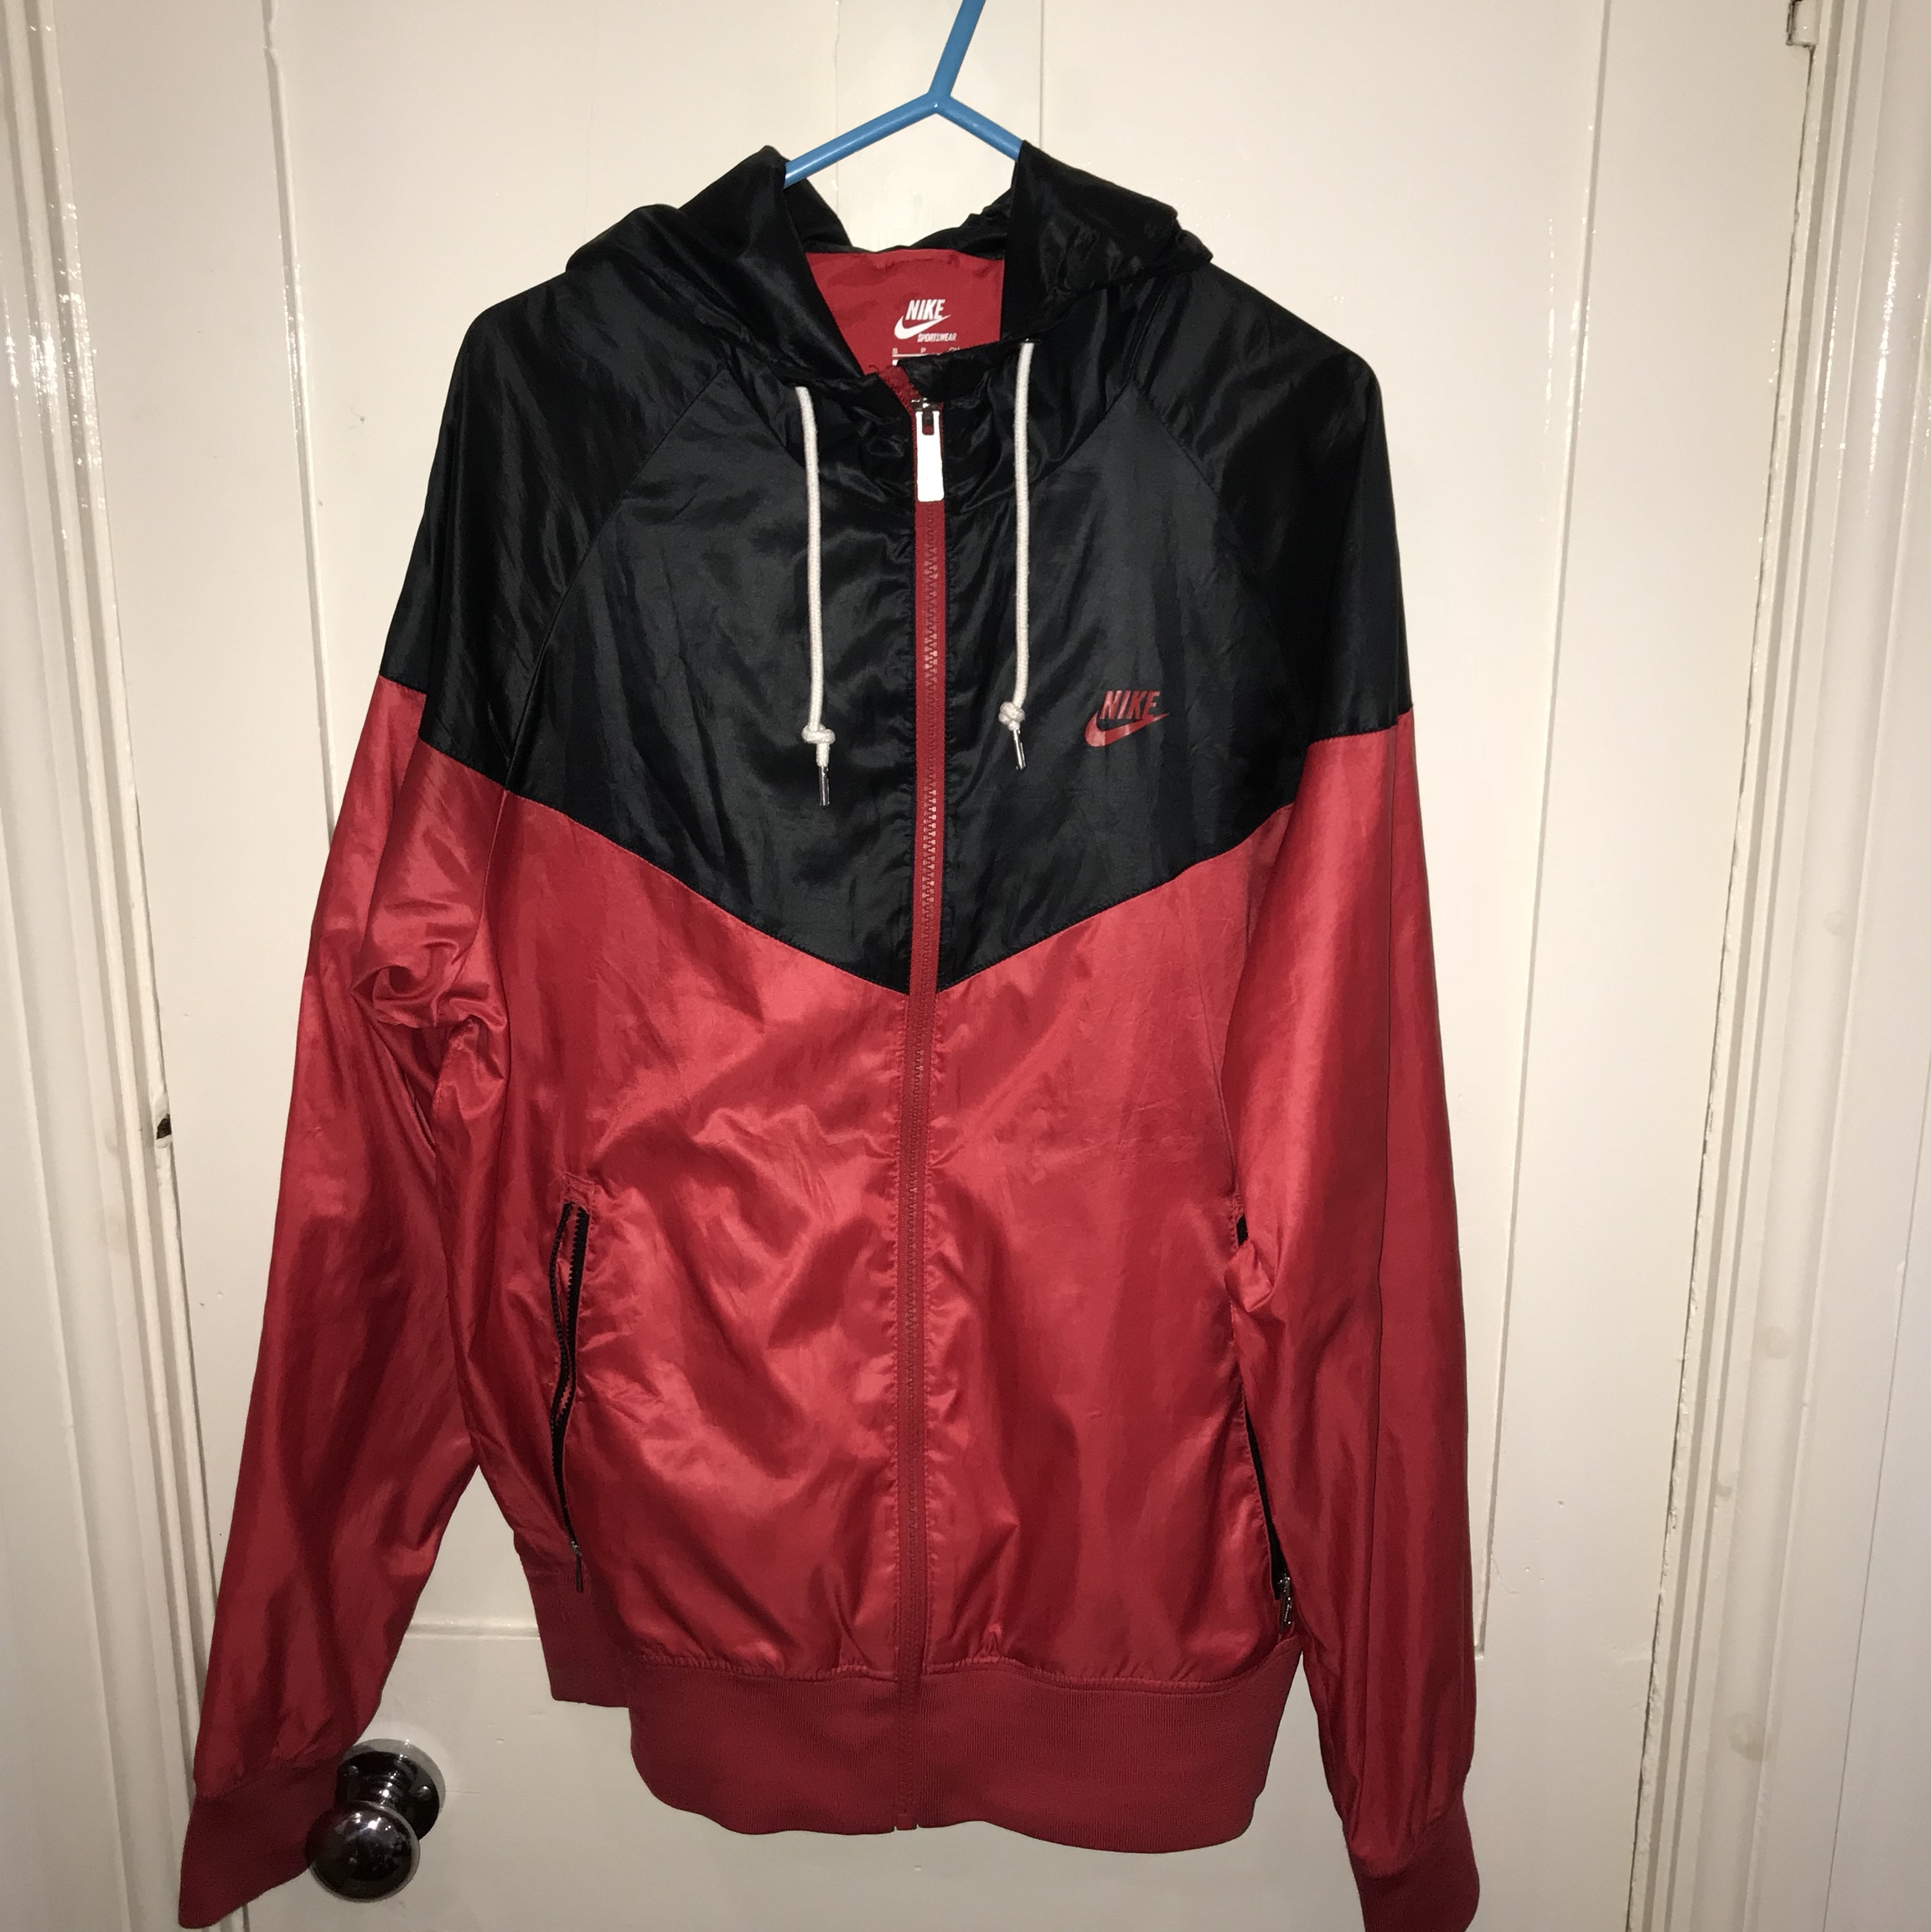 tonto Frustrante Impulso  Nike windrunner jacket in black and red size small.... - Depop